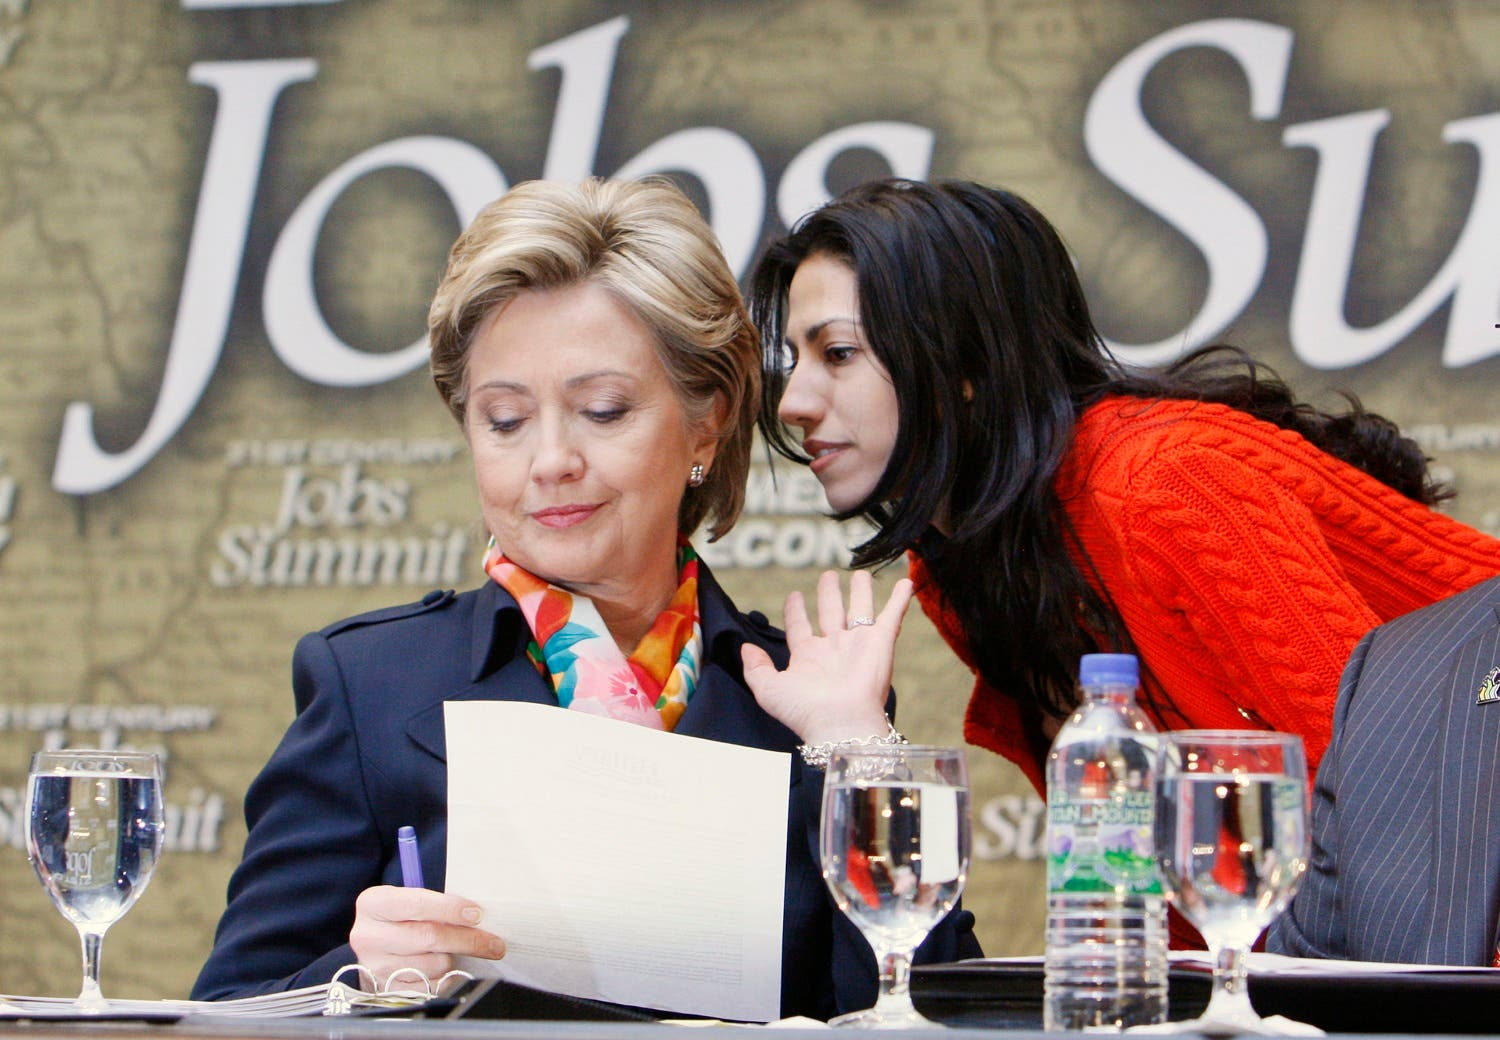 Human Abedin is a long-time aide to US Democratic presidential nominee Hillary Clinton. (AP)